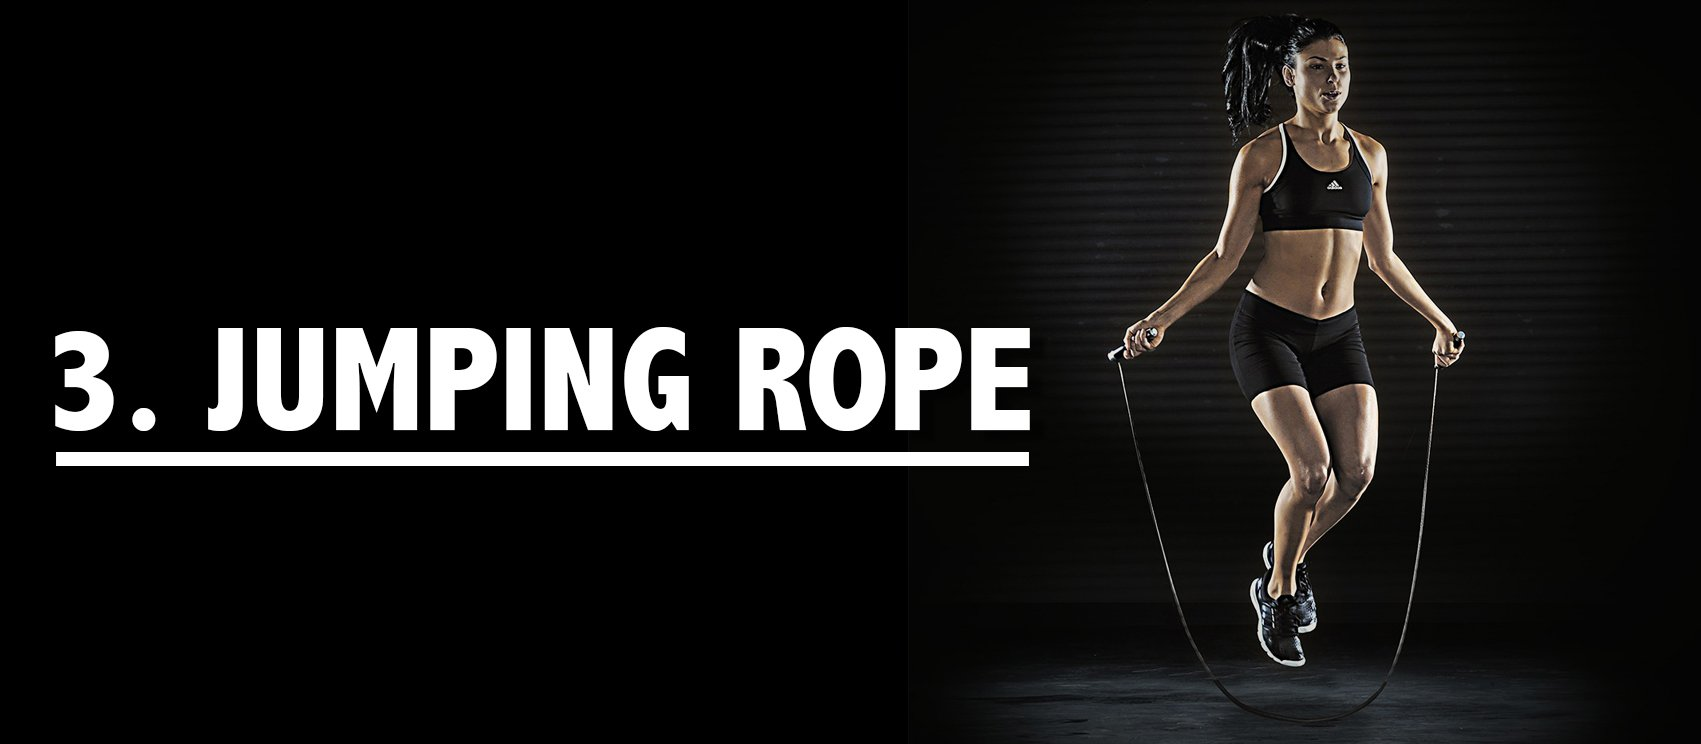 jumping-rope-belly-fat-reduction.jpg